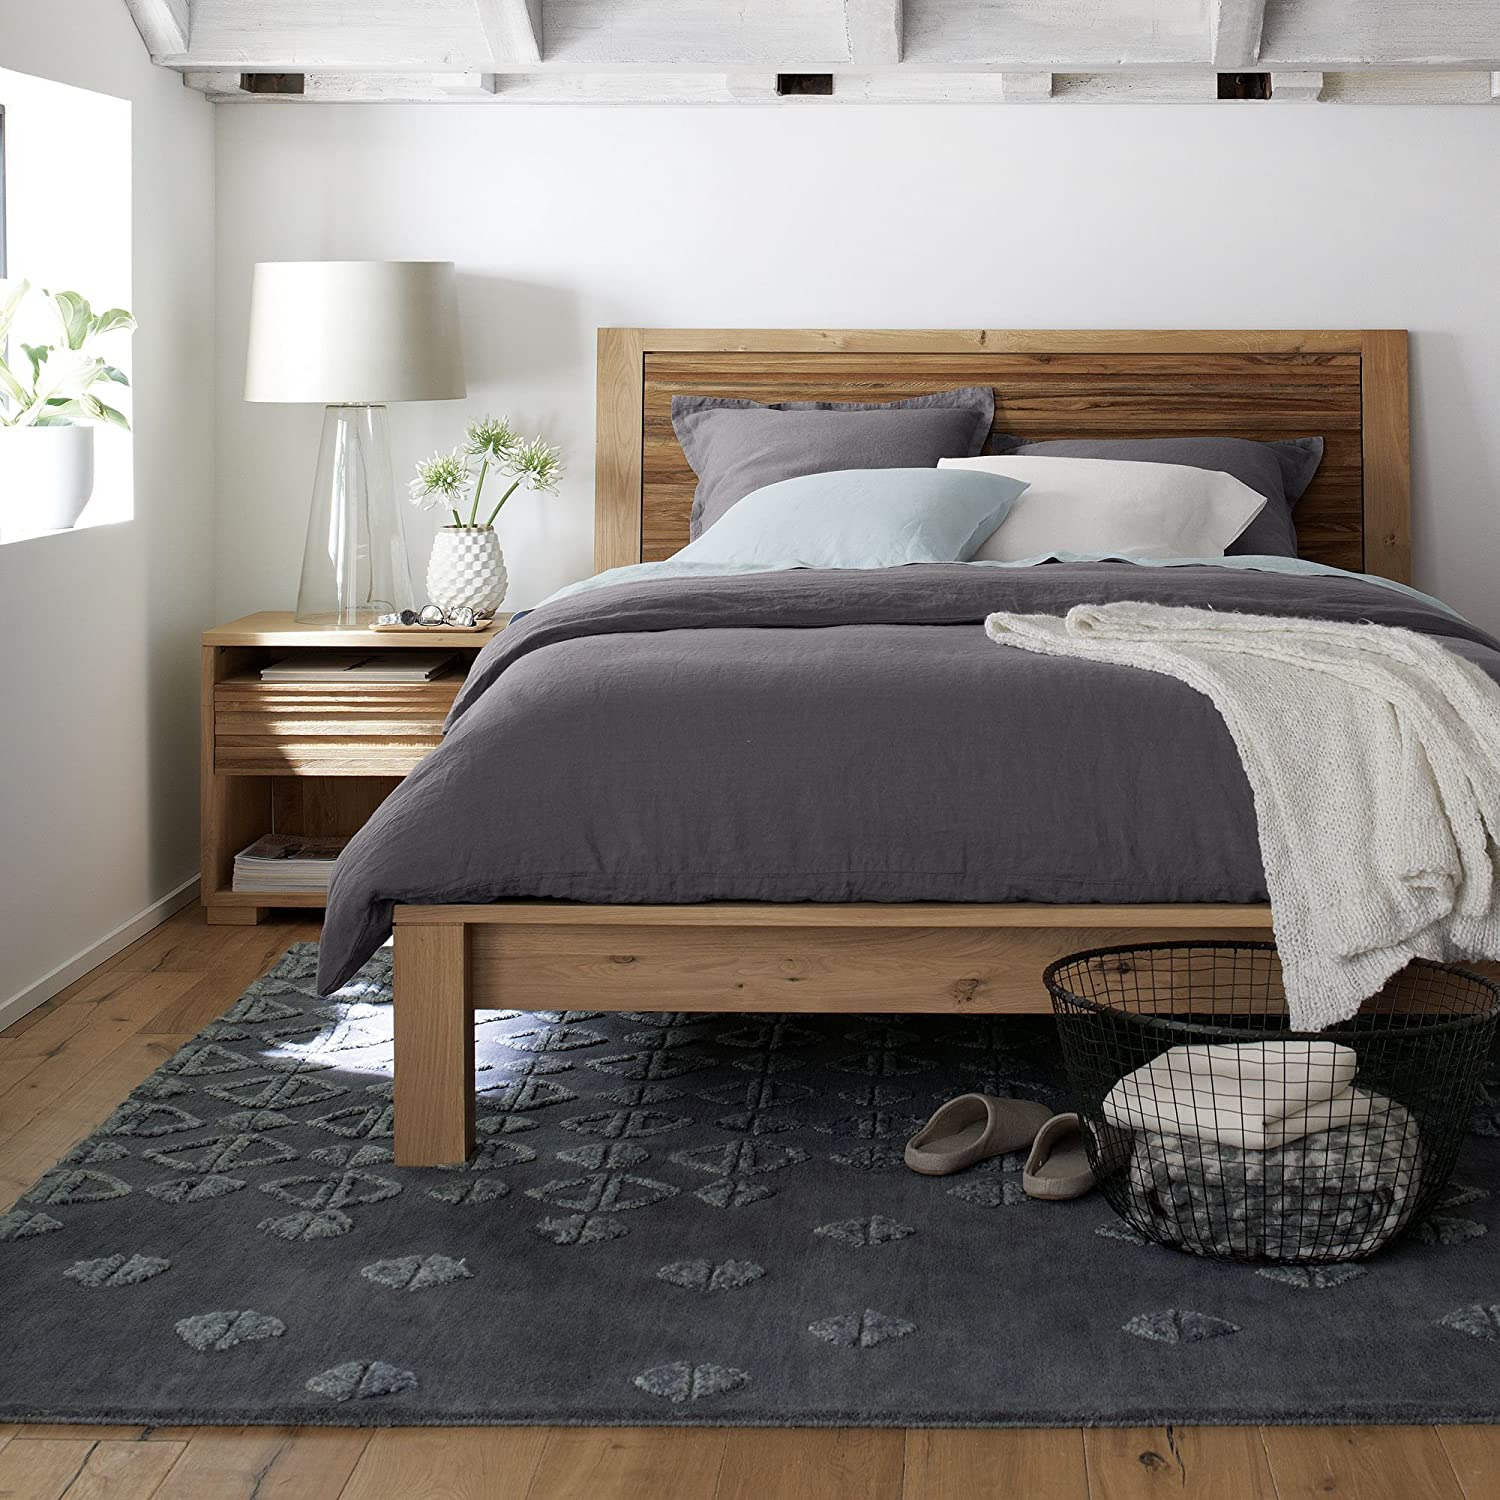 Pleasing Crate And Barrel Sierra Queen Bed Amazon Ca Home Kitchen Download Free Architecture Designs Scobabritishbridgeorg